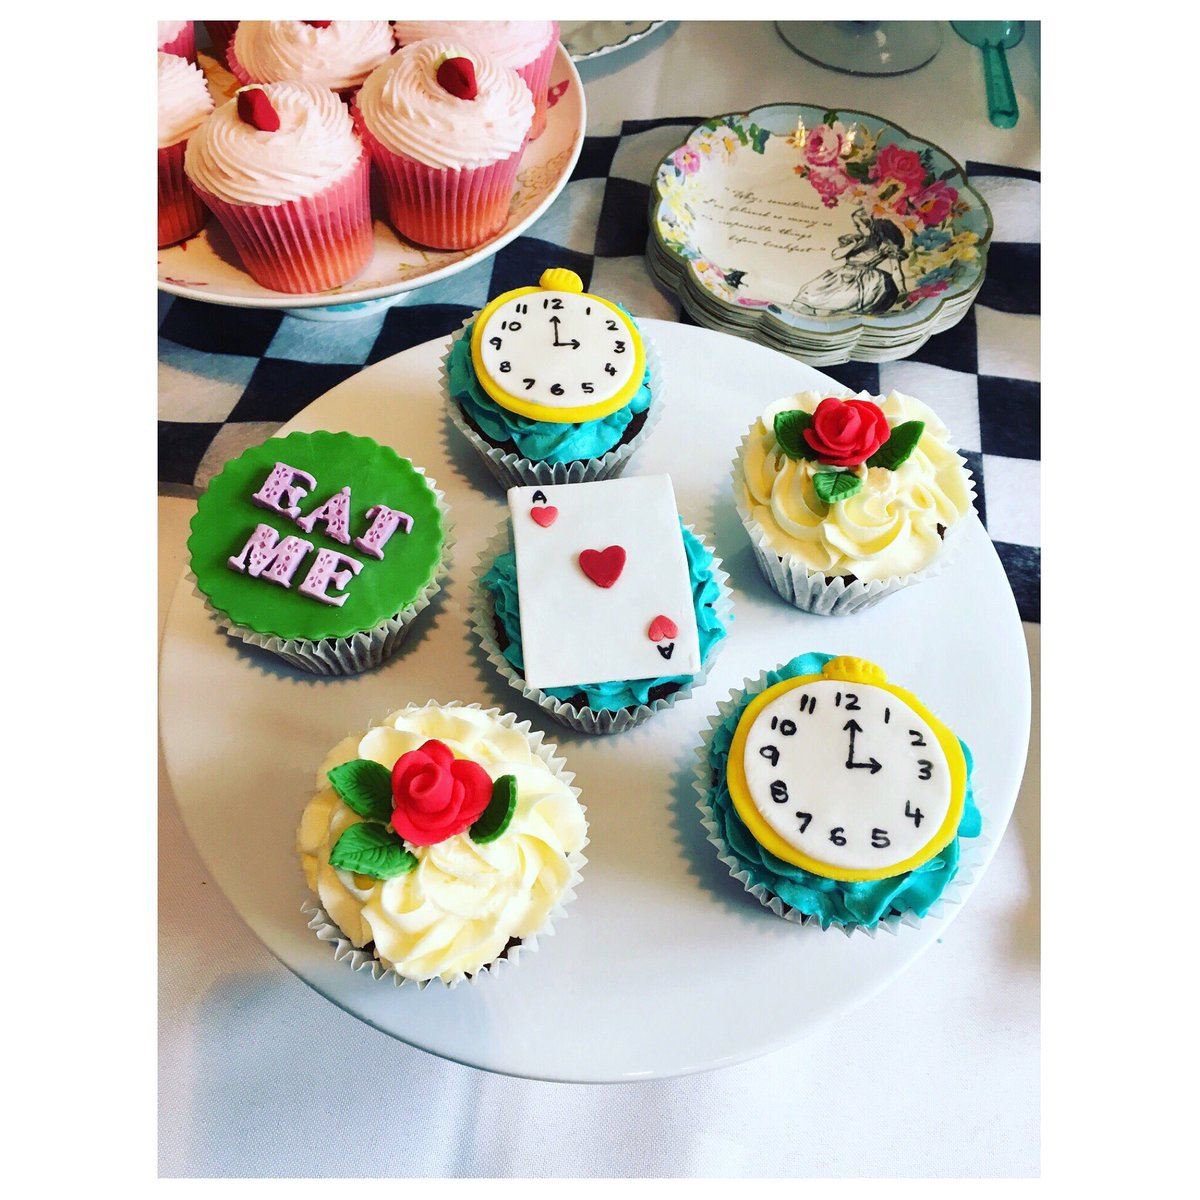 #sundayfunday is made for #cupcake especially when they are this pretty!  #nomnomnom #cake #30plusblogs #thirtyplusblogger #fashionblogger<br>http://pic.twitter.com/7XdEenP9Ws